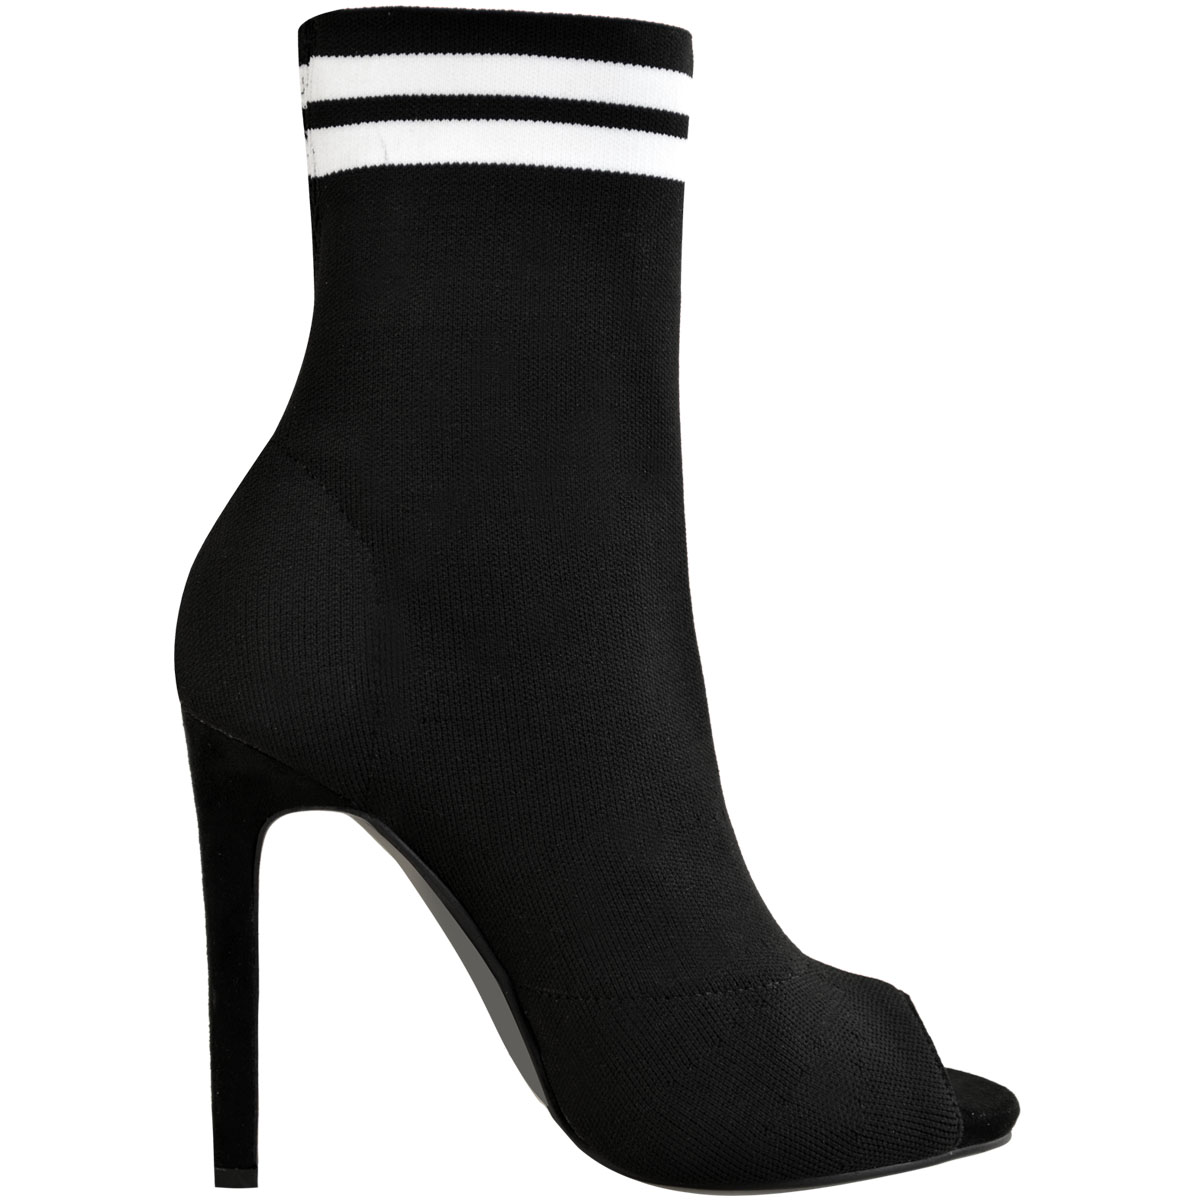 Womens-Ladies-Stilleto-High-Heel-Sock-Boots-Knit-Stretch-Sports-Luxe-Size